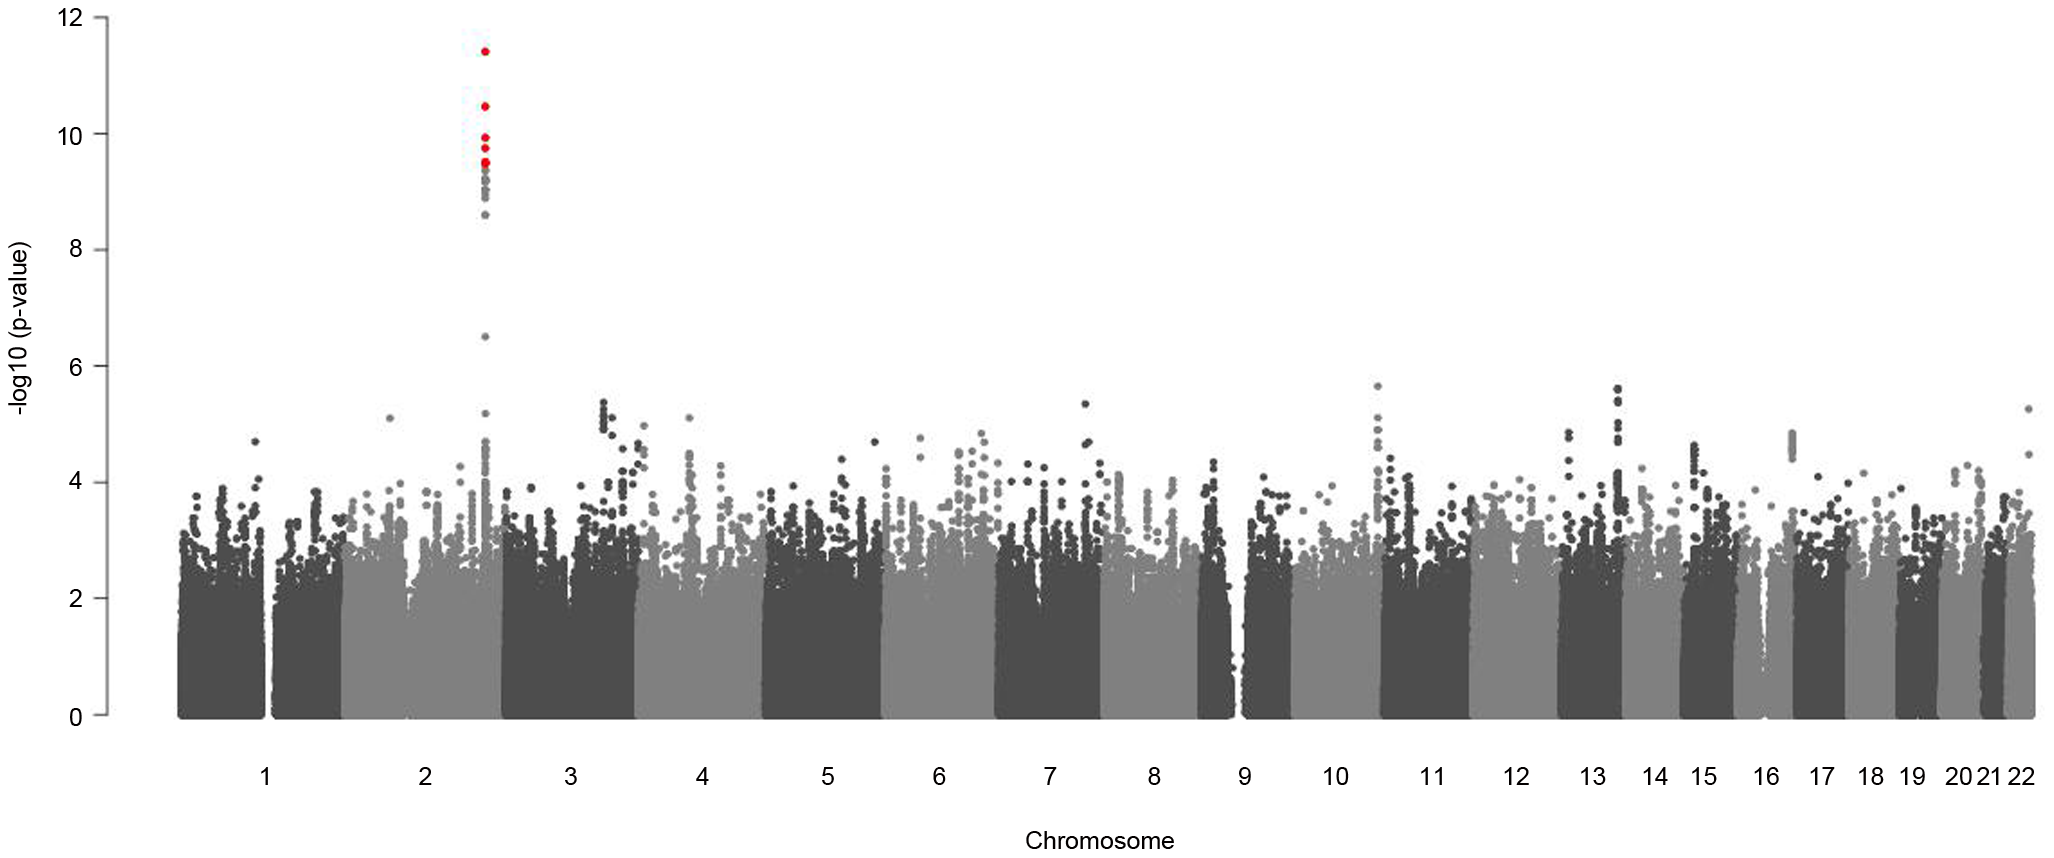 Manhattan plots for gender-specific genome-wide beta-differences for the metabolite glycine.